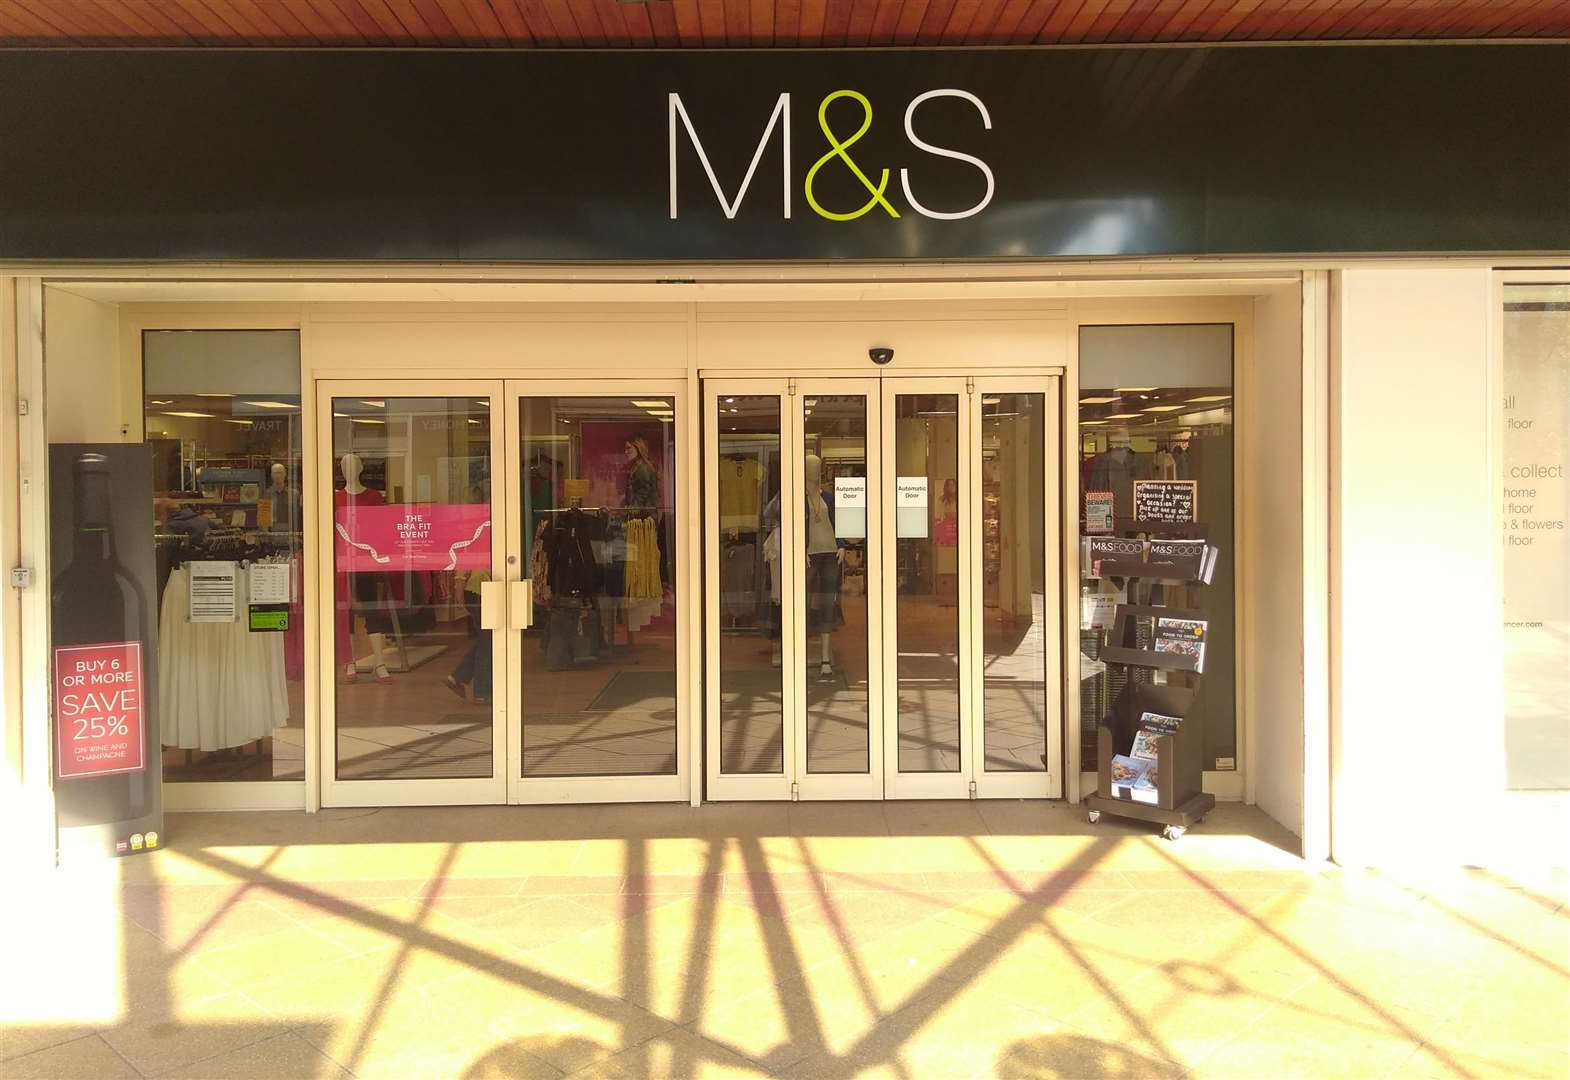 M&S confirms it will close its Newmarket store in August